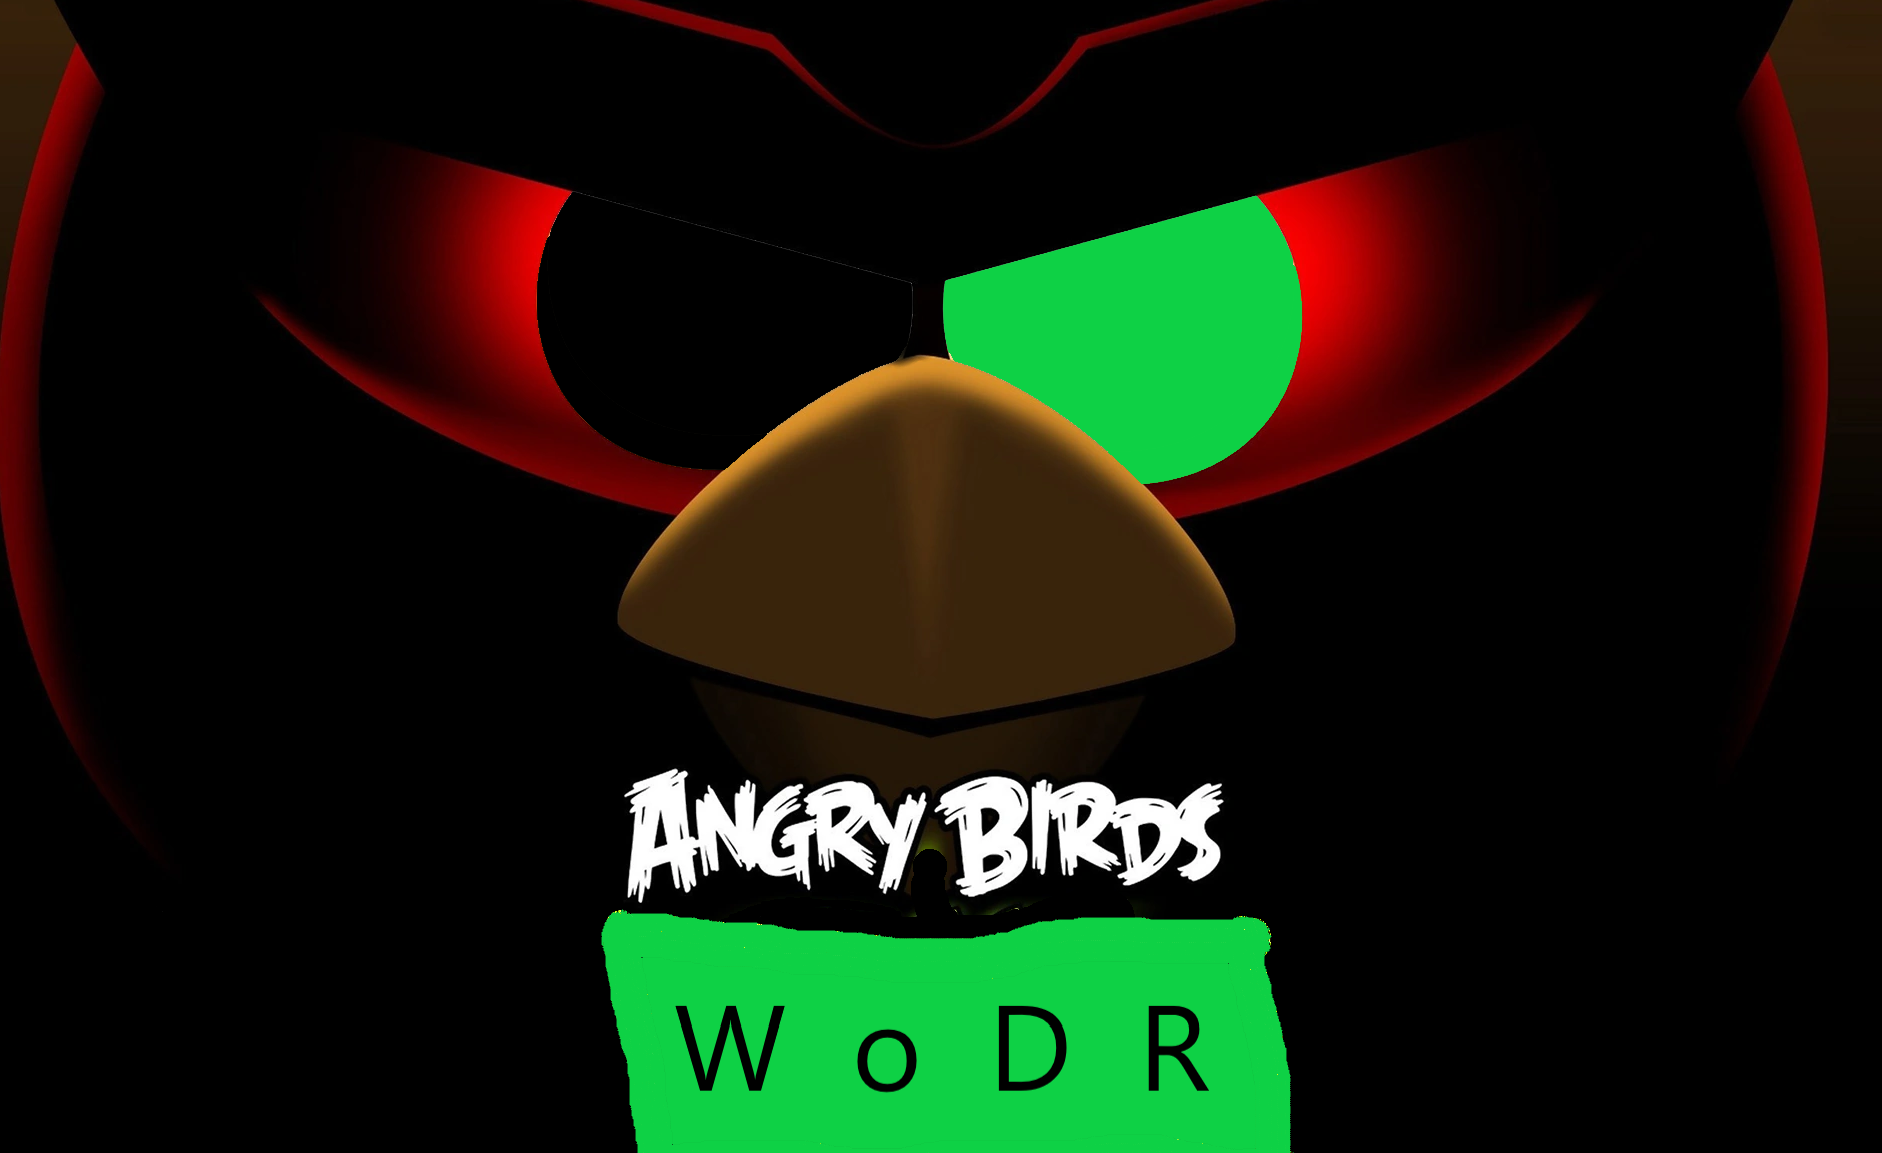 Angry Birds: Warriors of Distorted Reality